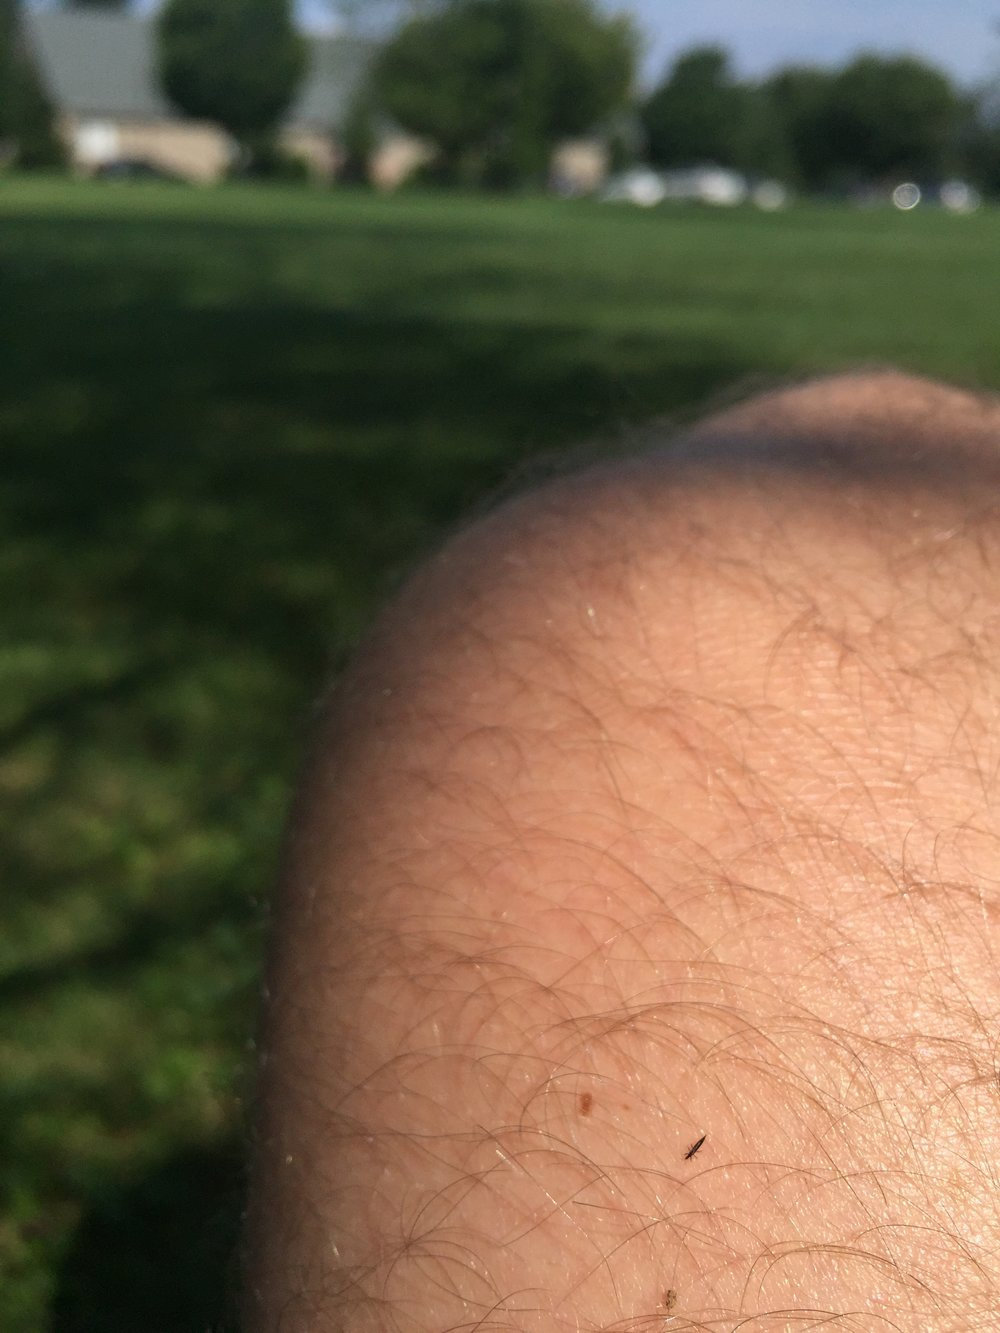 Sitting in nature = being crawled on by nature, often by these barely visible, tiny insects.